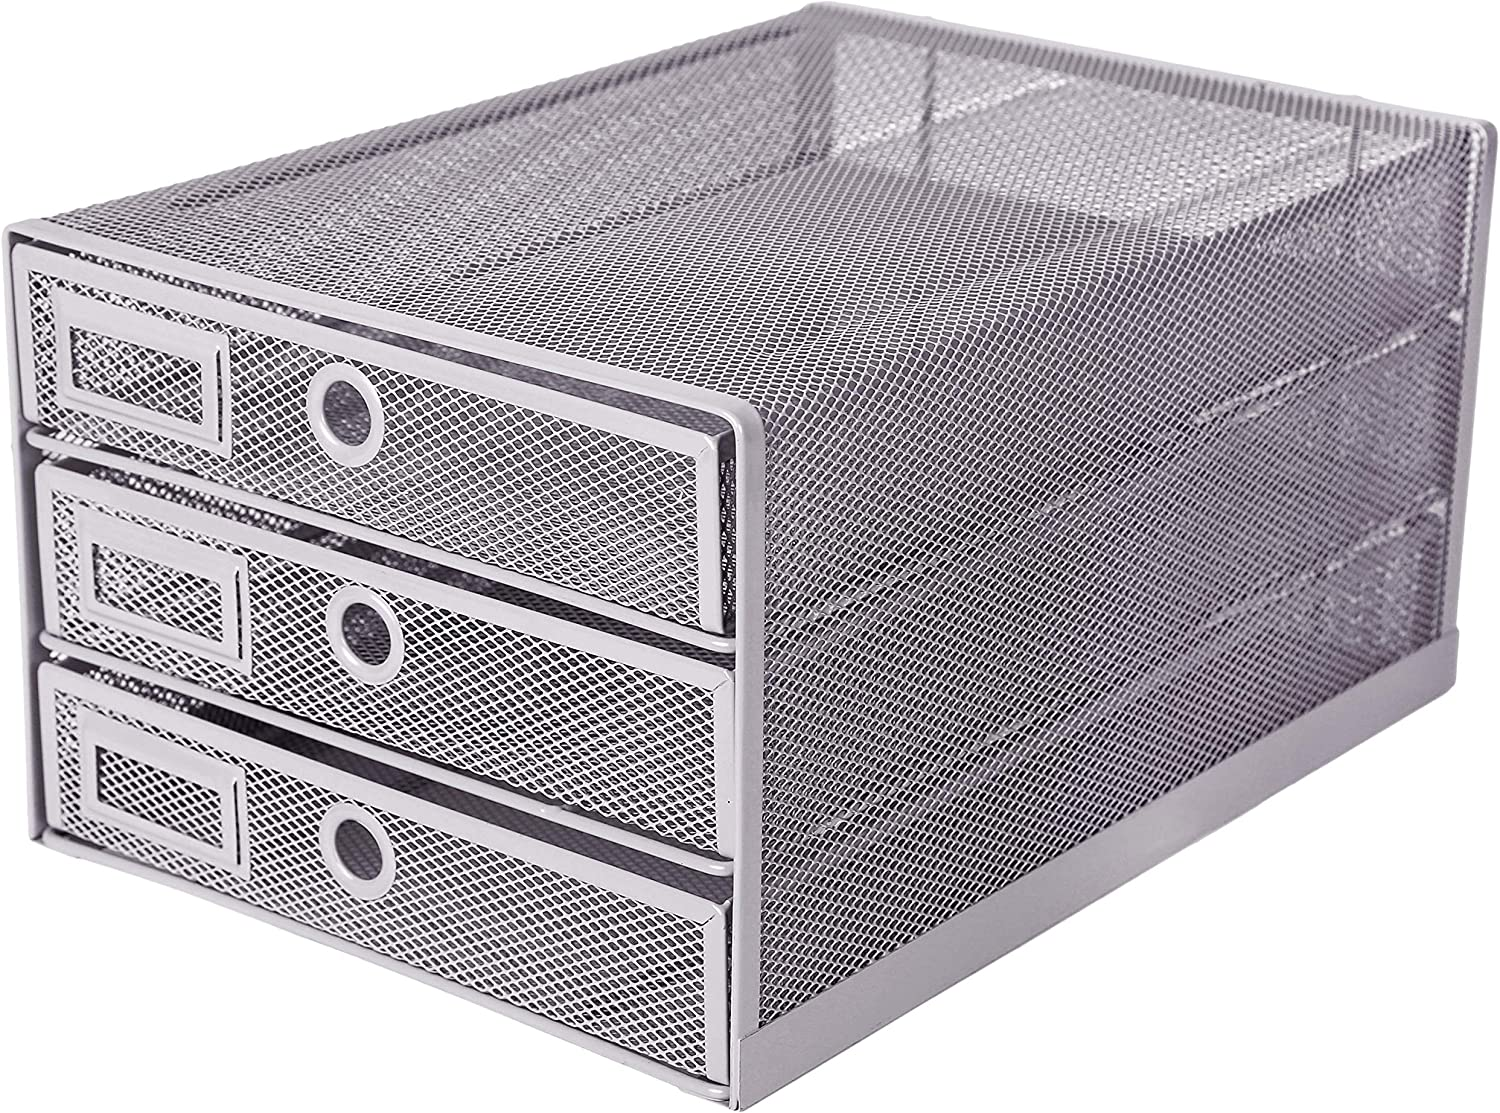 Exerz Desk Organizer Wire Mesh 3 Tier Sliding Drawers Paper Sorter/Multifunctional/Premium Solid Construction for Letters, Documents, Mail, Files, Paper (Silver EX3205)